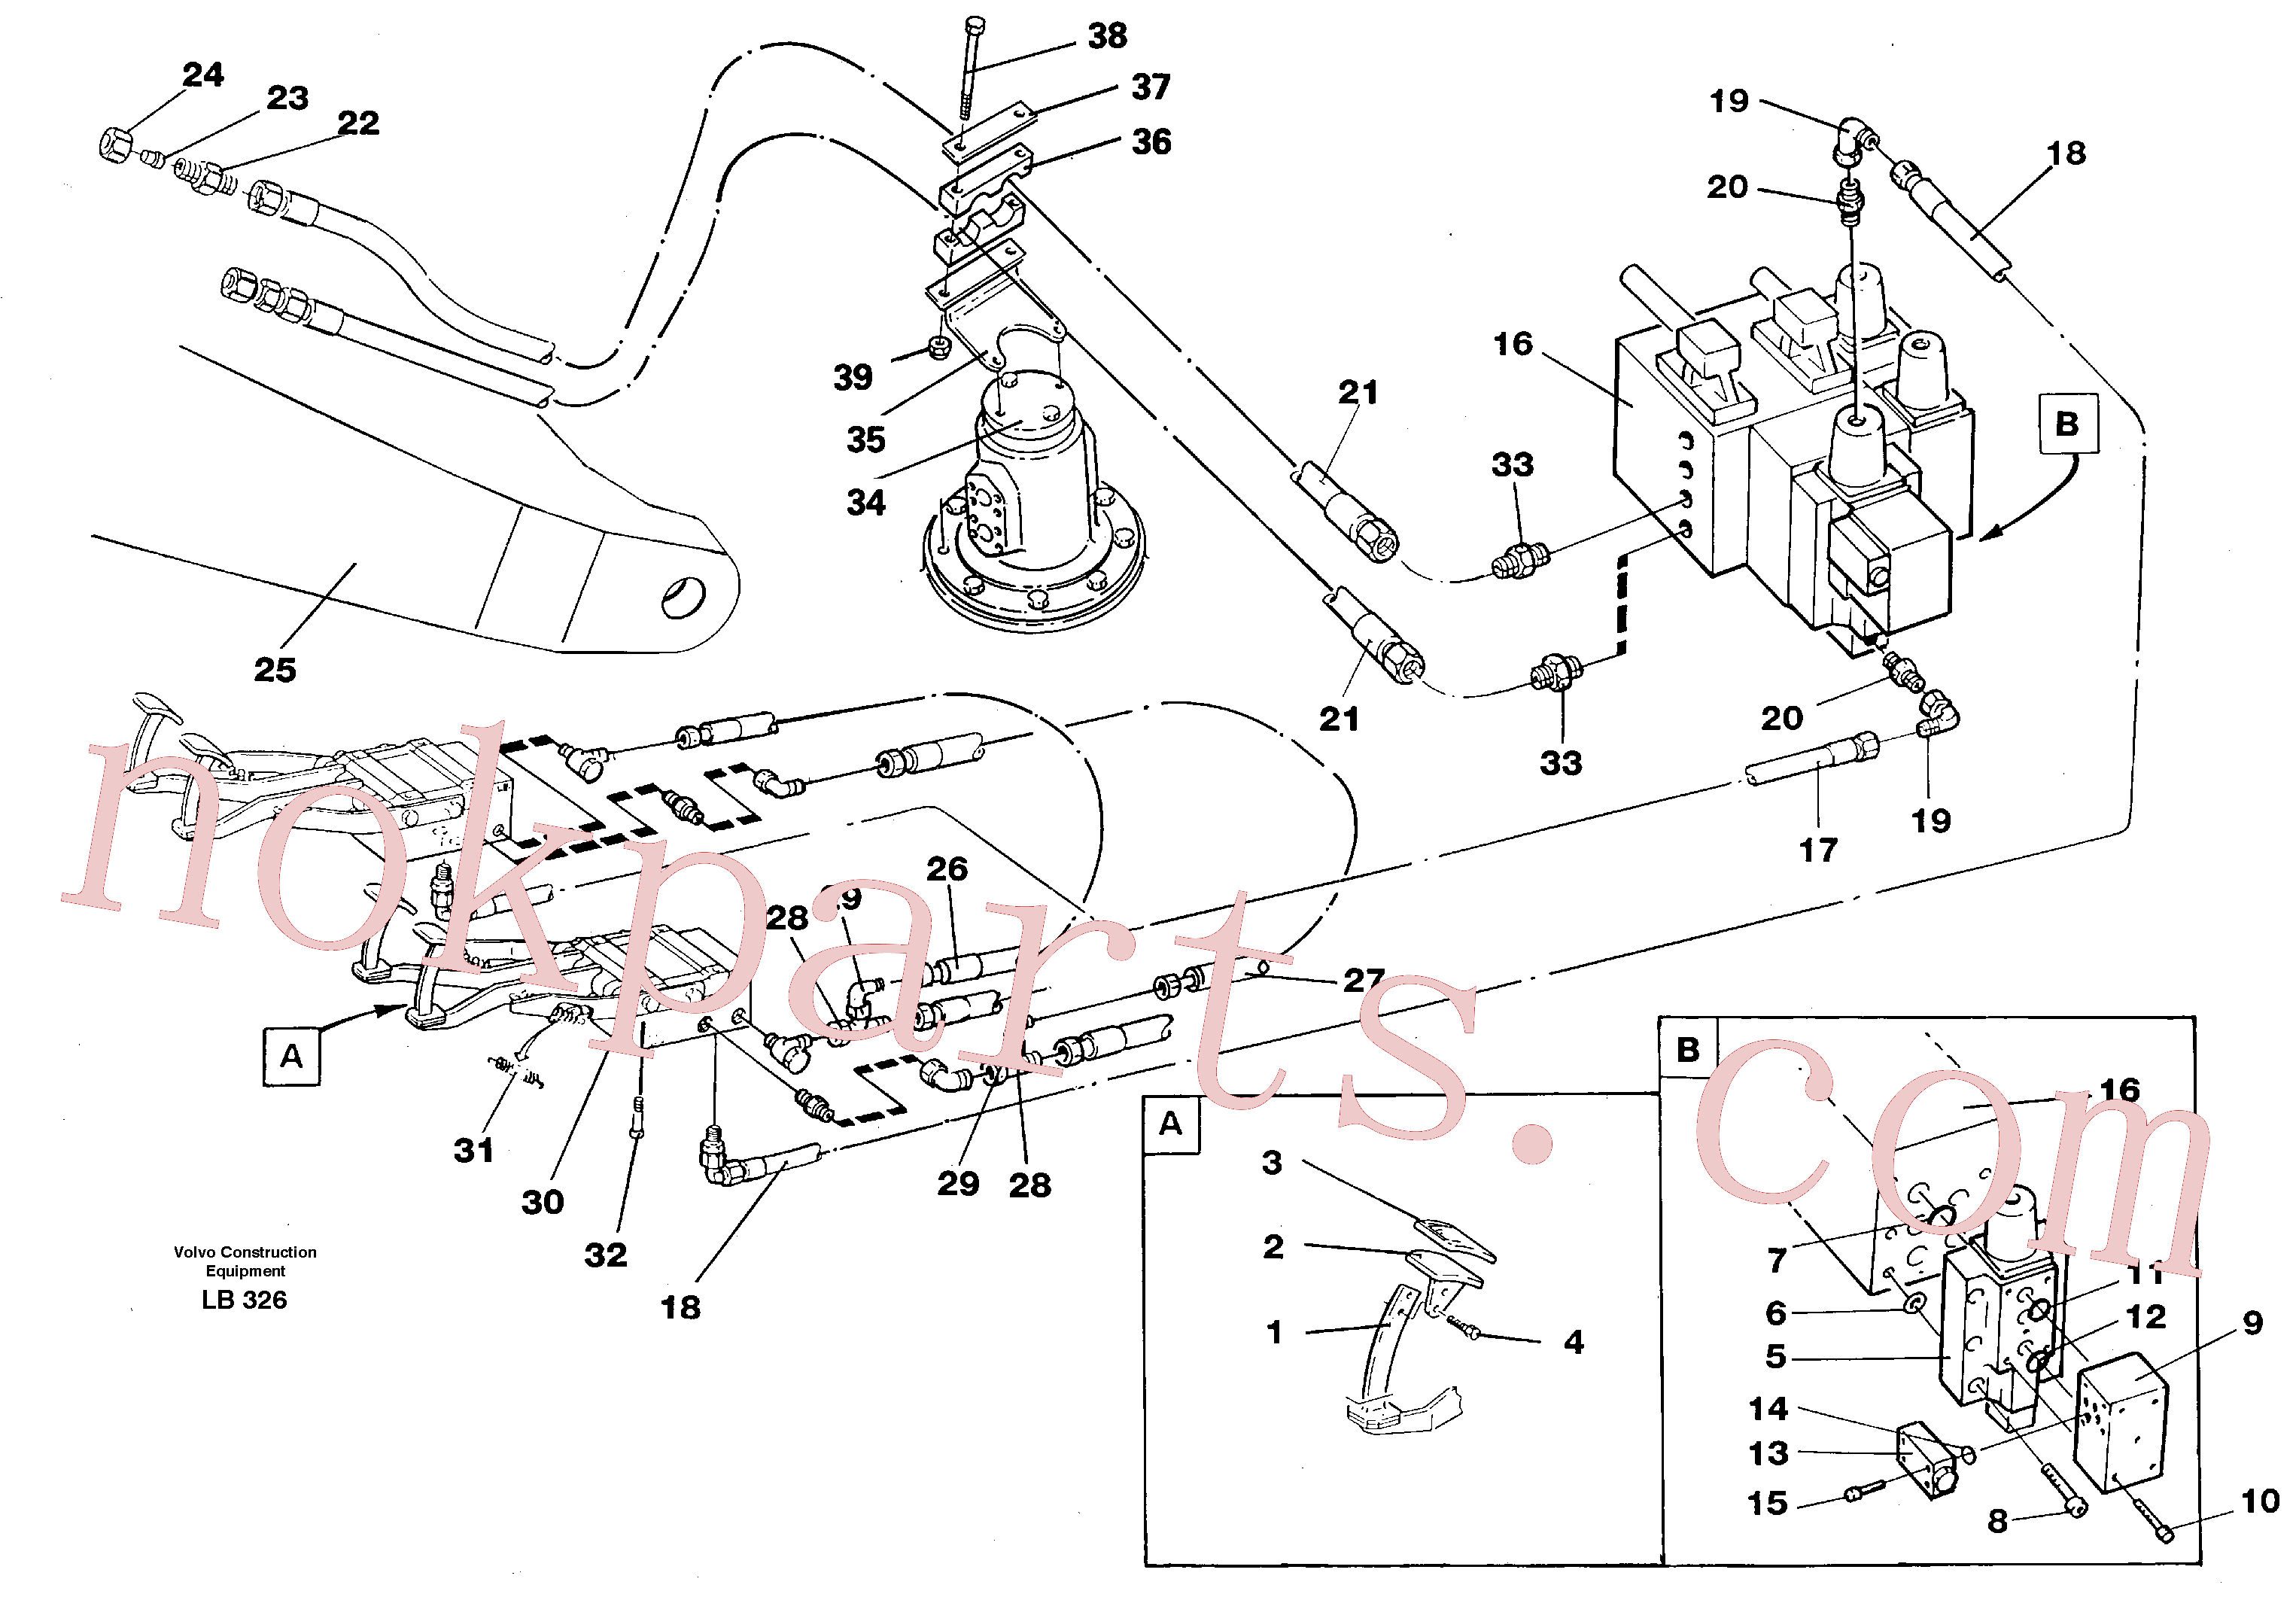 VOE14213152 for Volvo Slope bucket/rotating grab hydraulics in base machine(LB326 assembly)